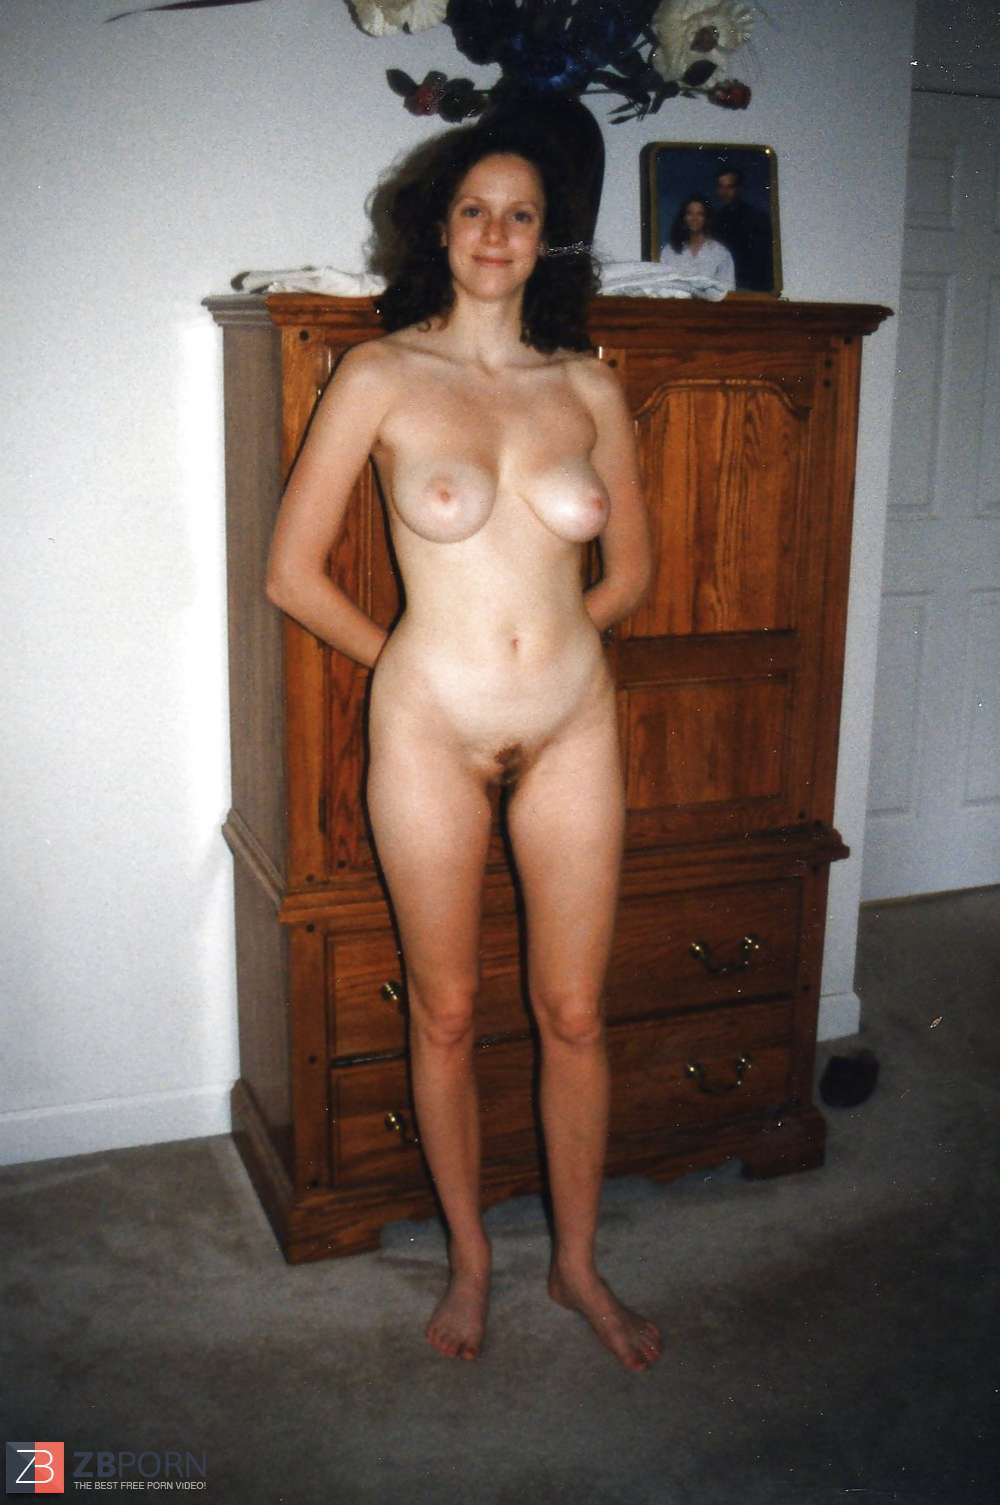 Polaroids of my wife naked